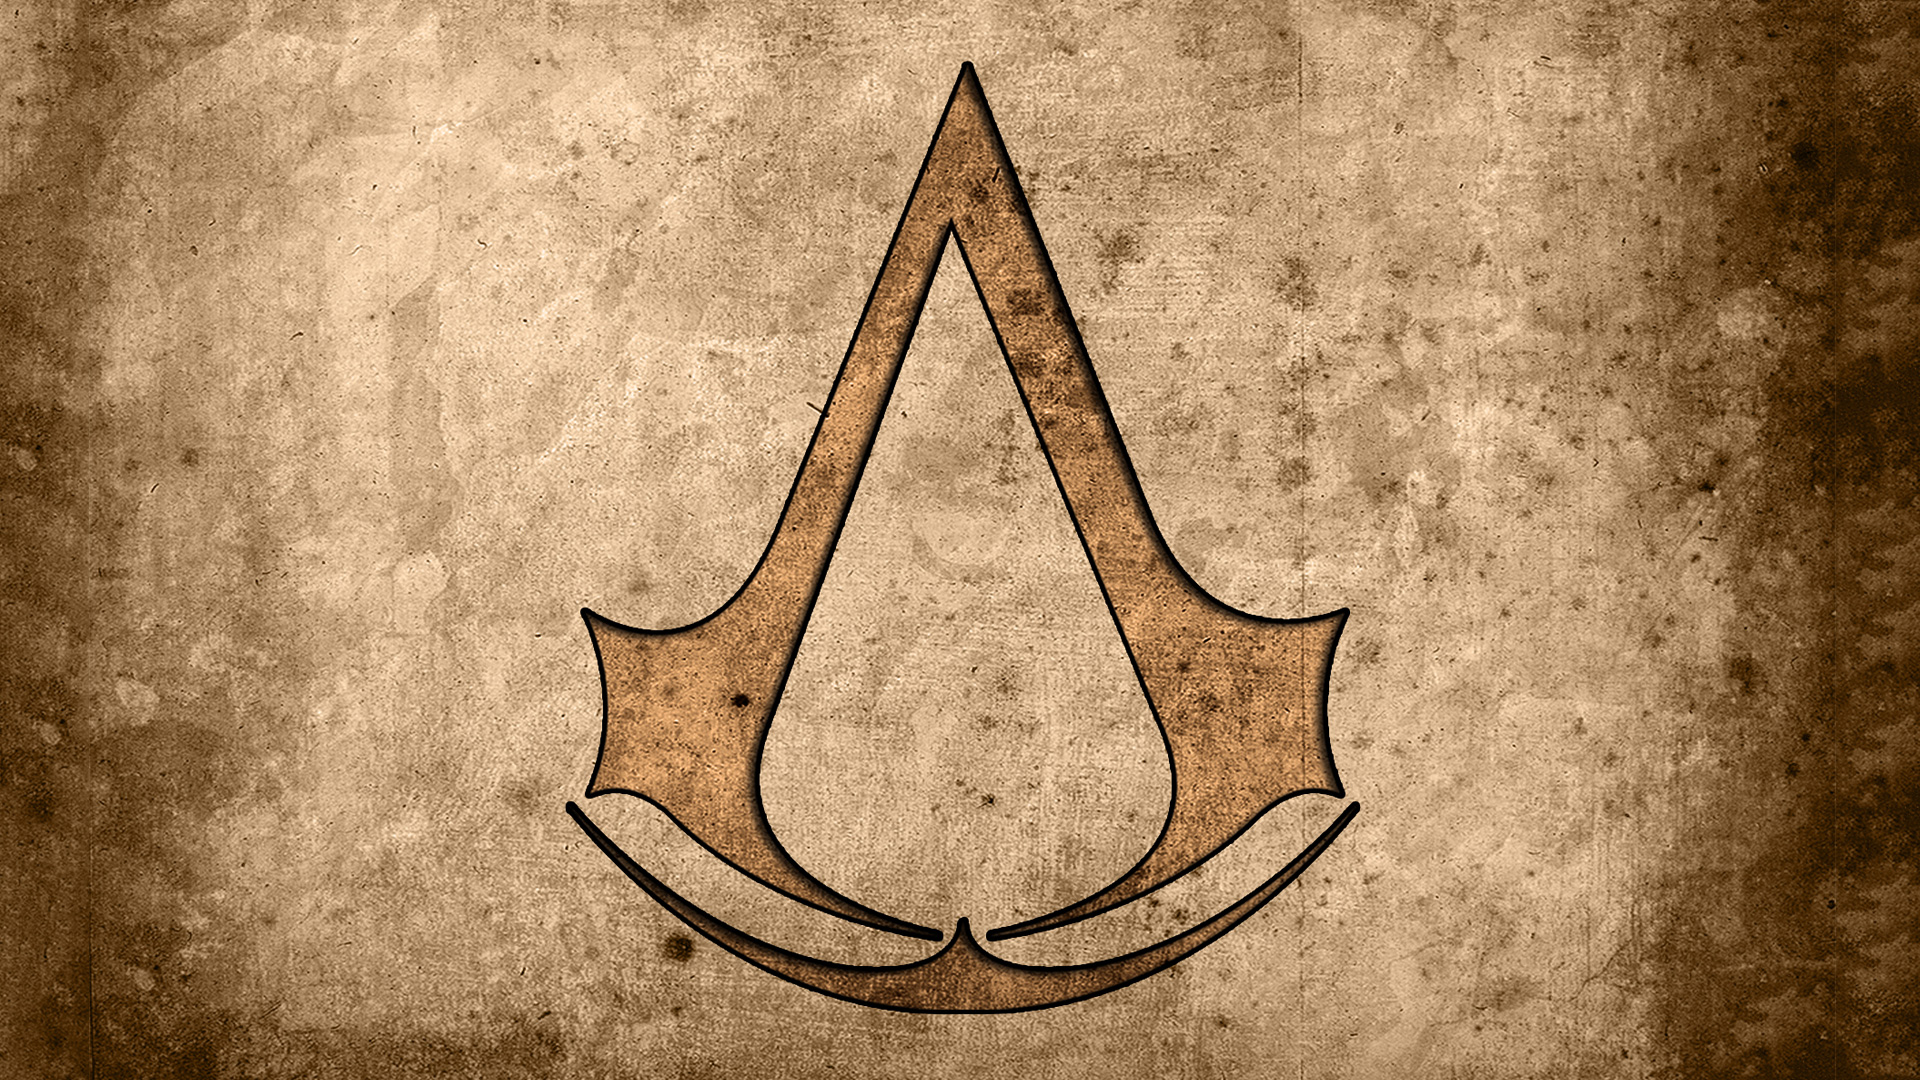 assassins-creed-ii-symbol